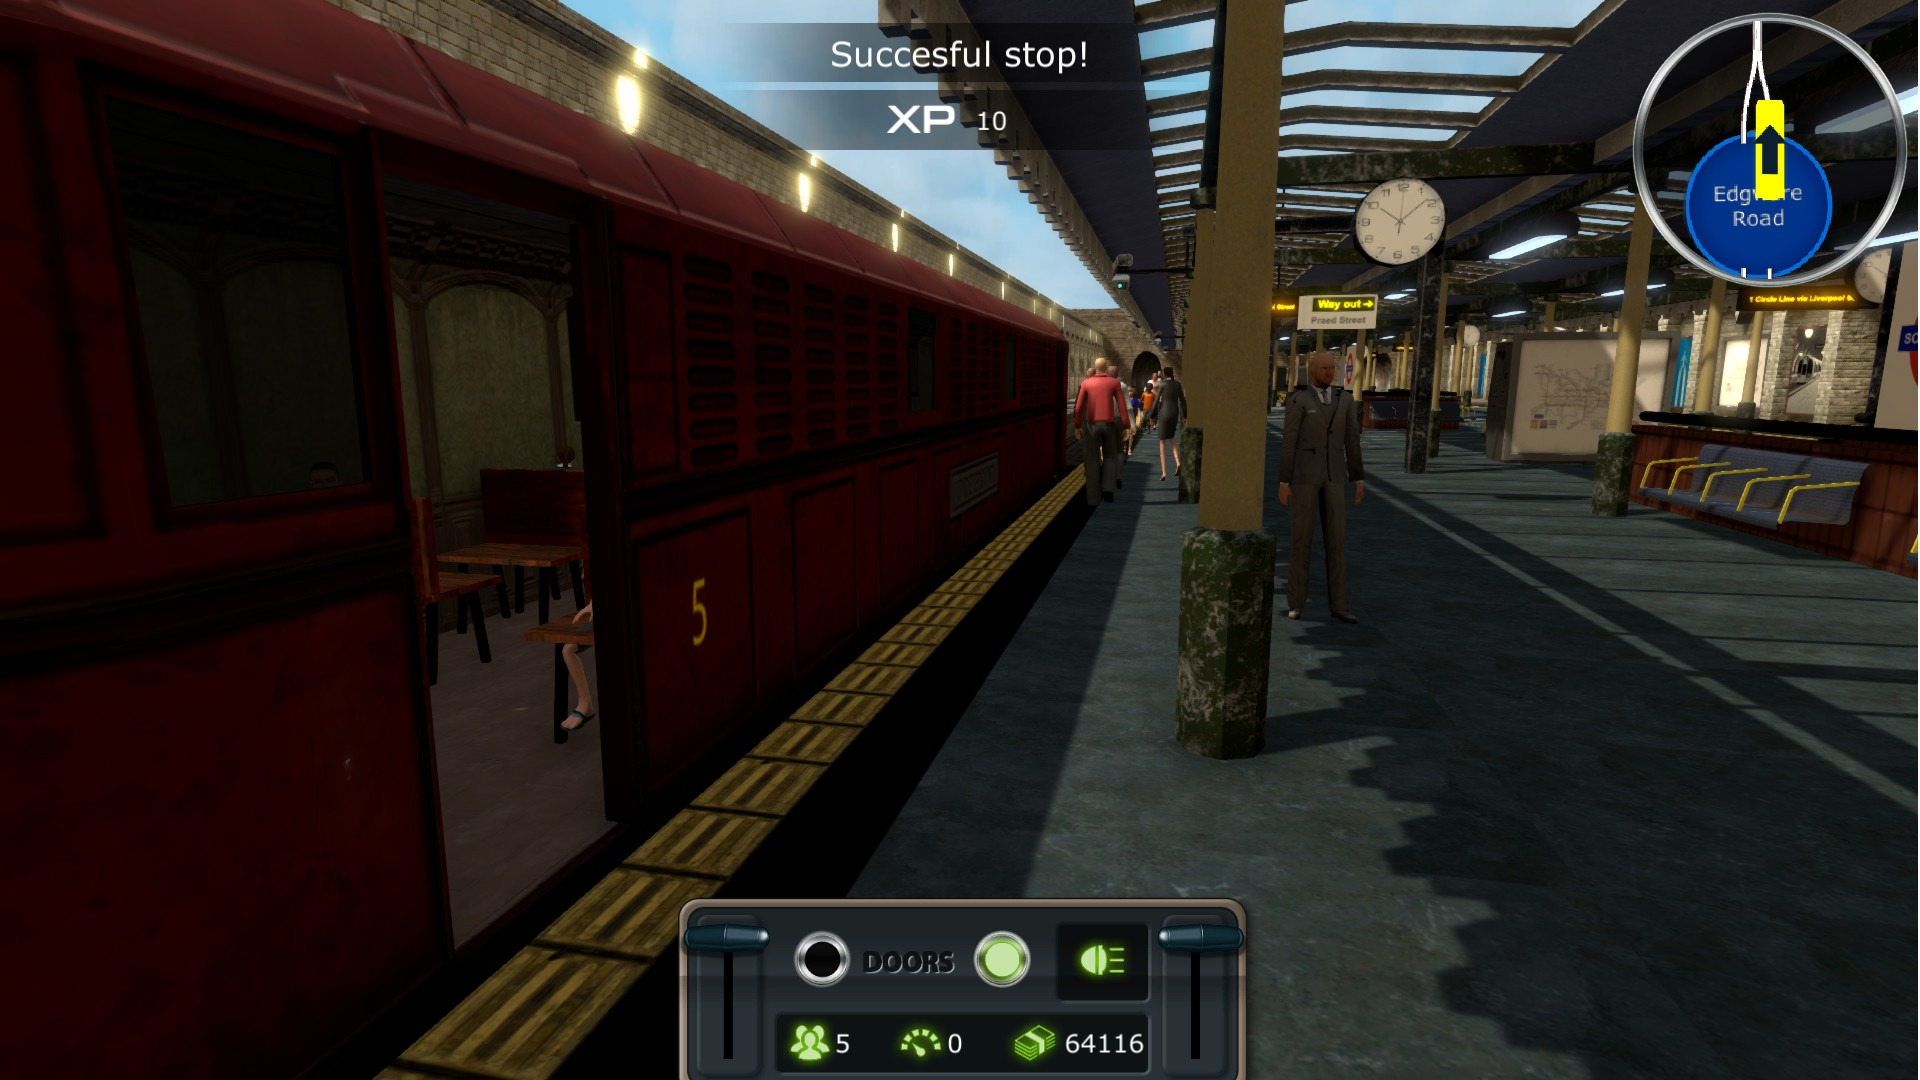 London Underground Simulator for Android - APK Download